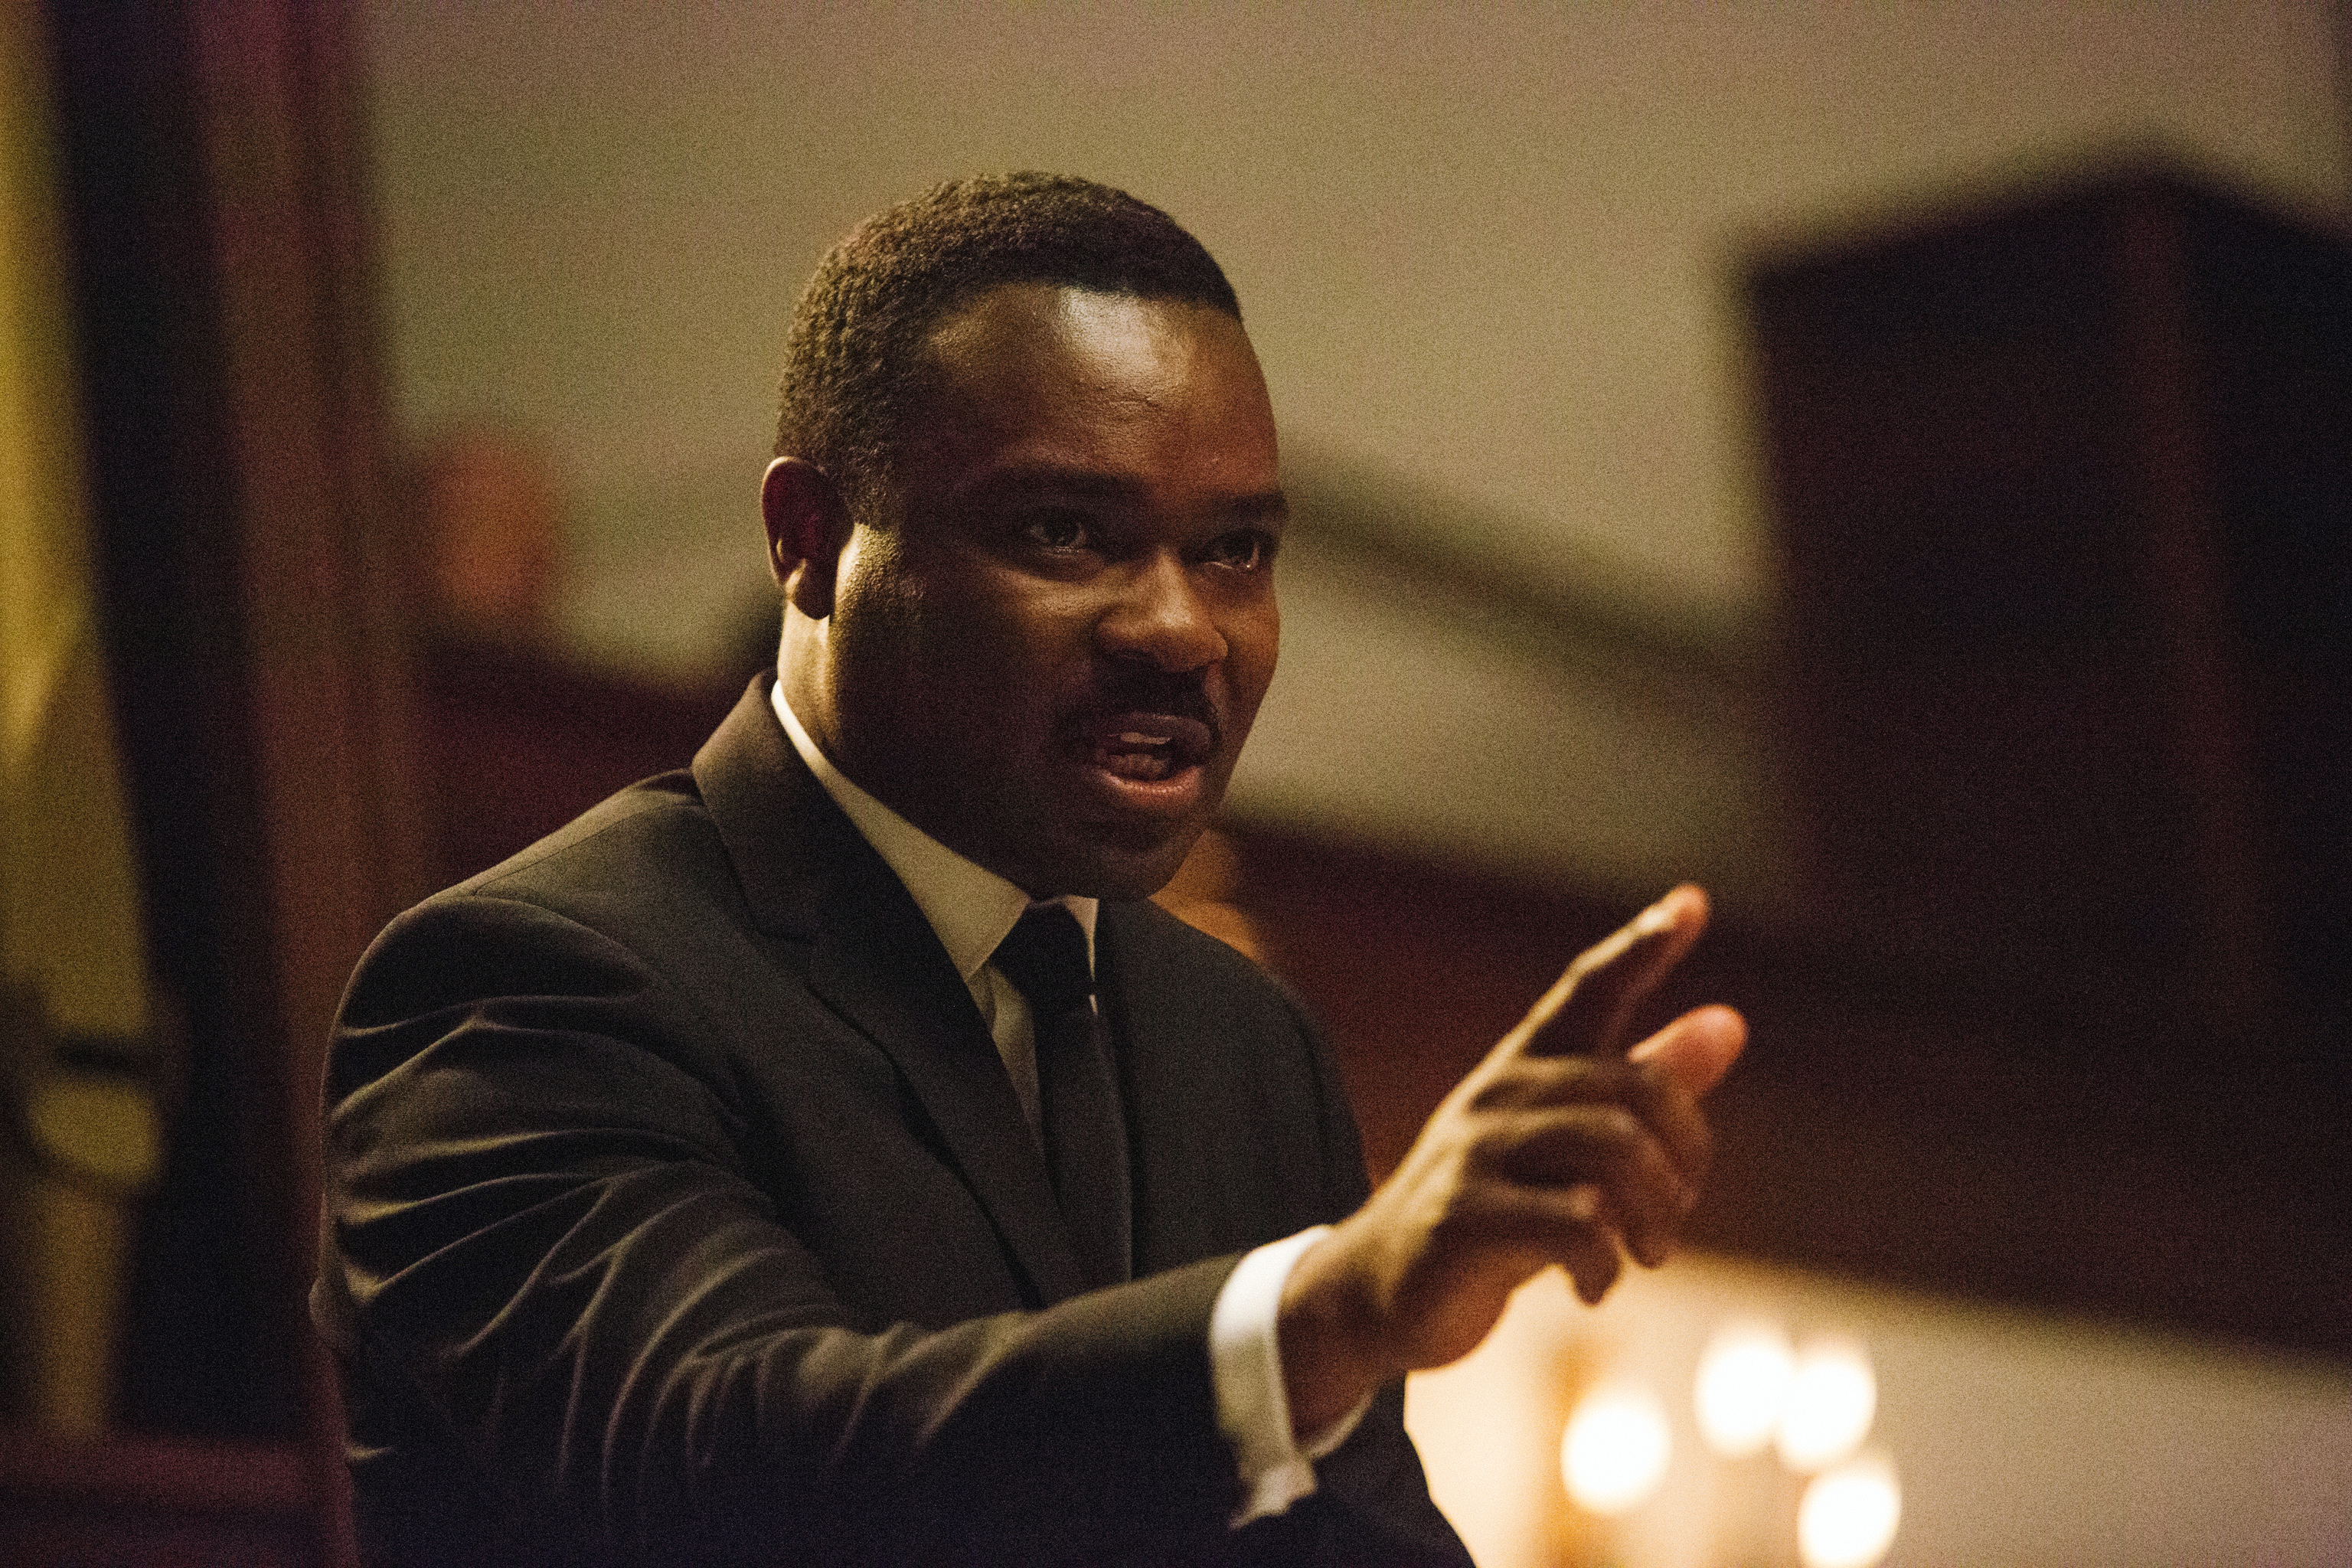 In this image released by Paramount Pictures, David Oyelowo portrays Dr. Martin Luther King, Jr. in a scene from Selma